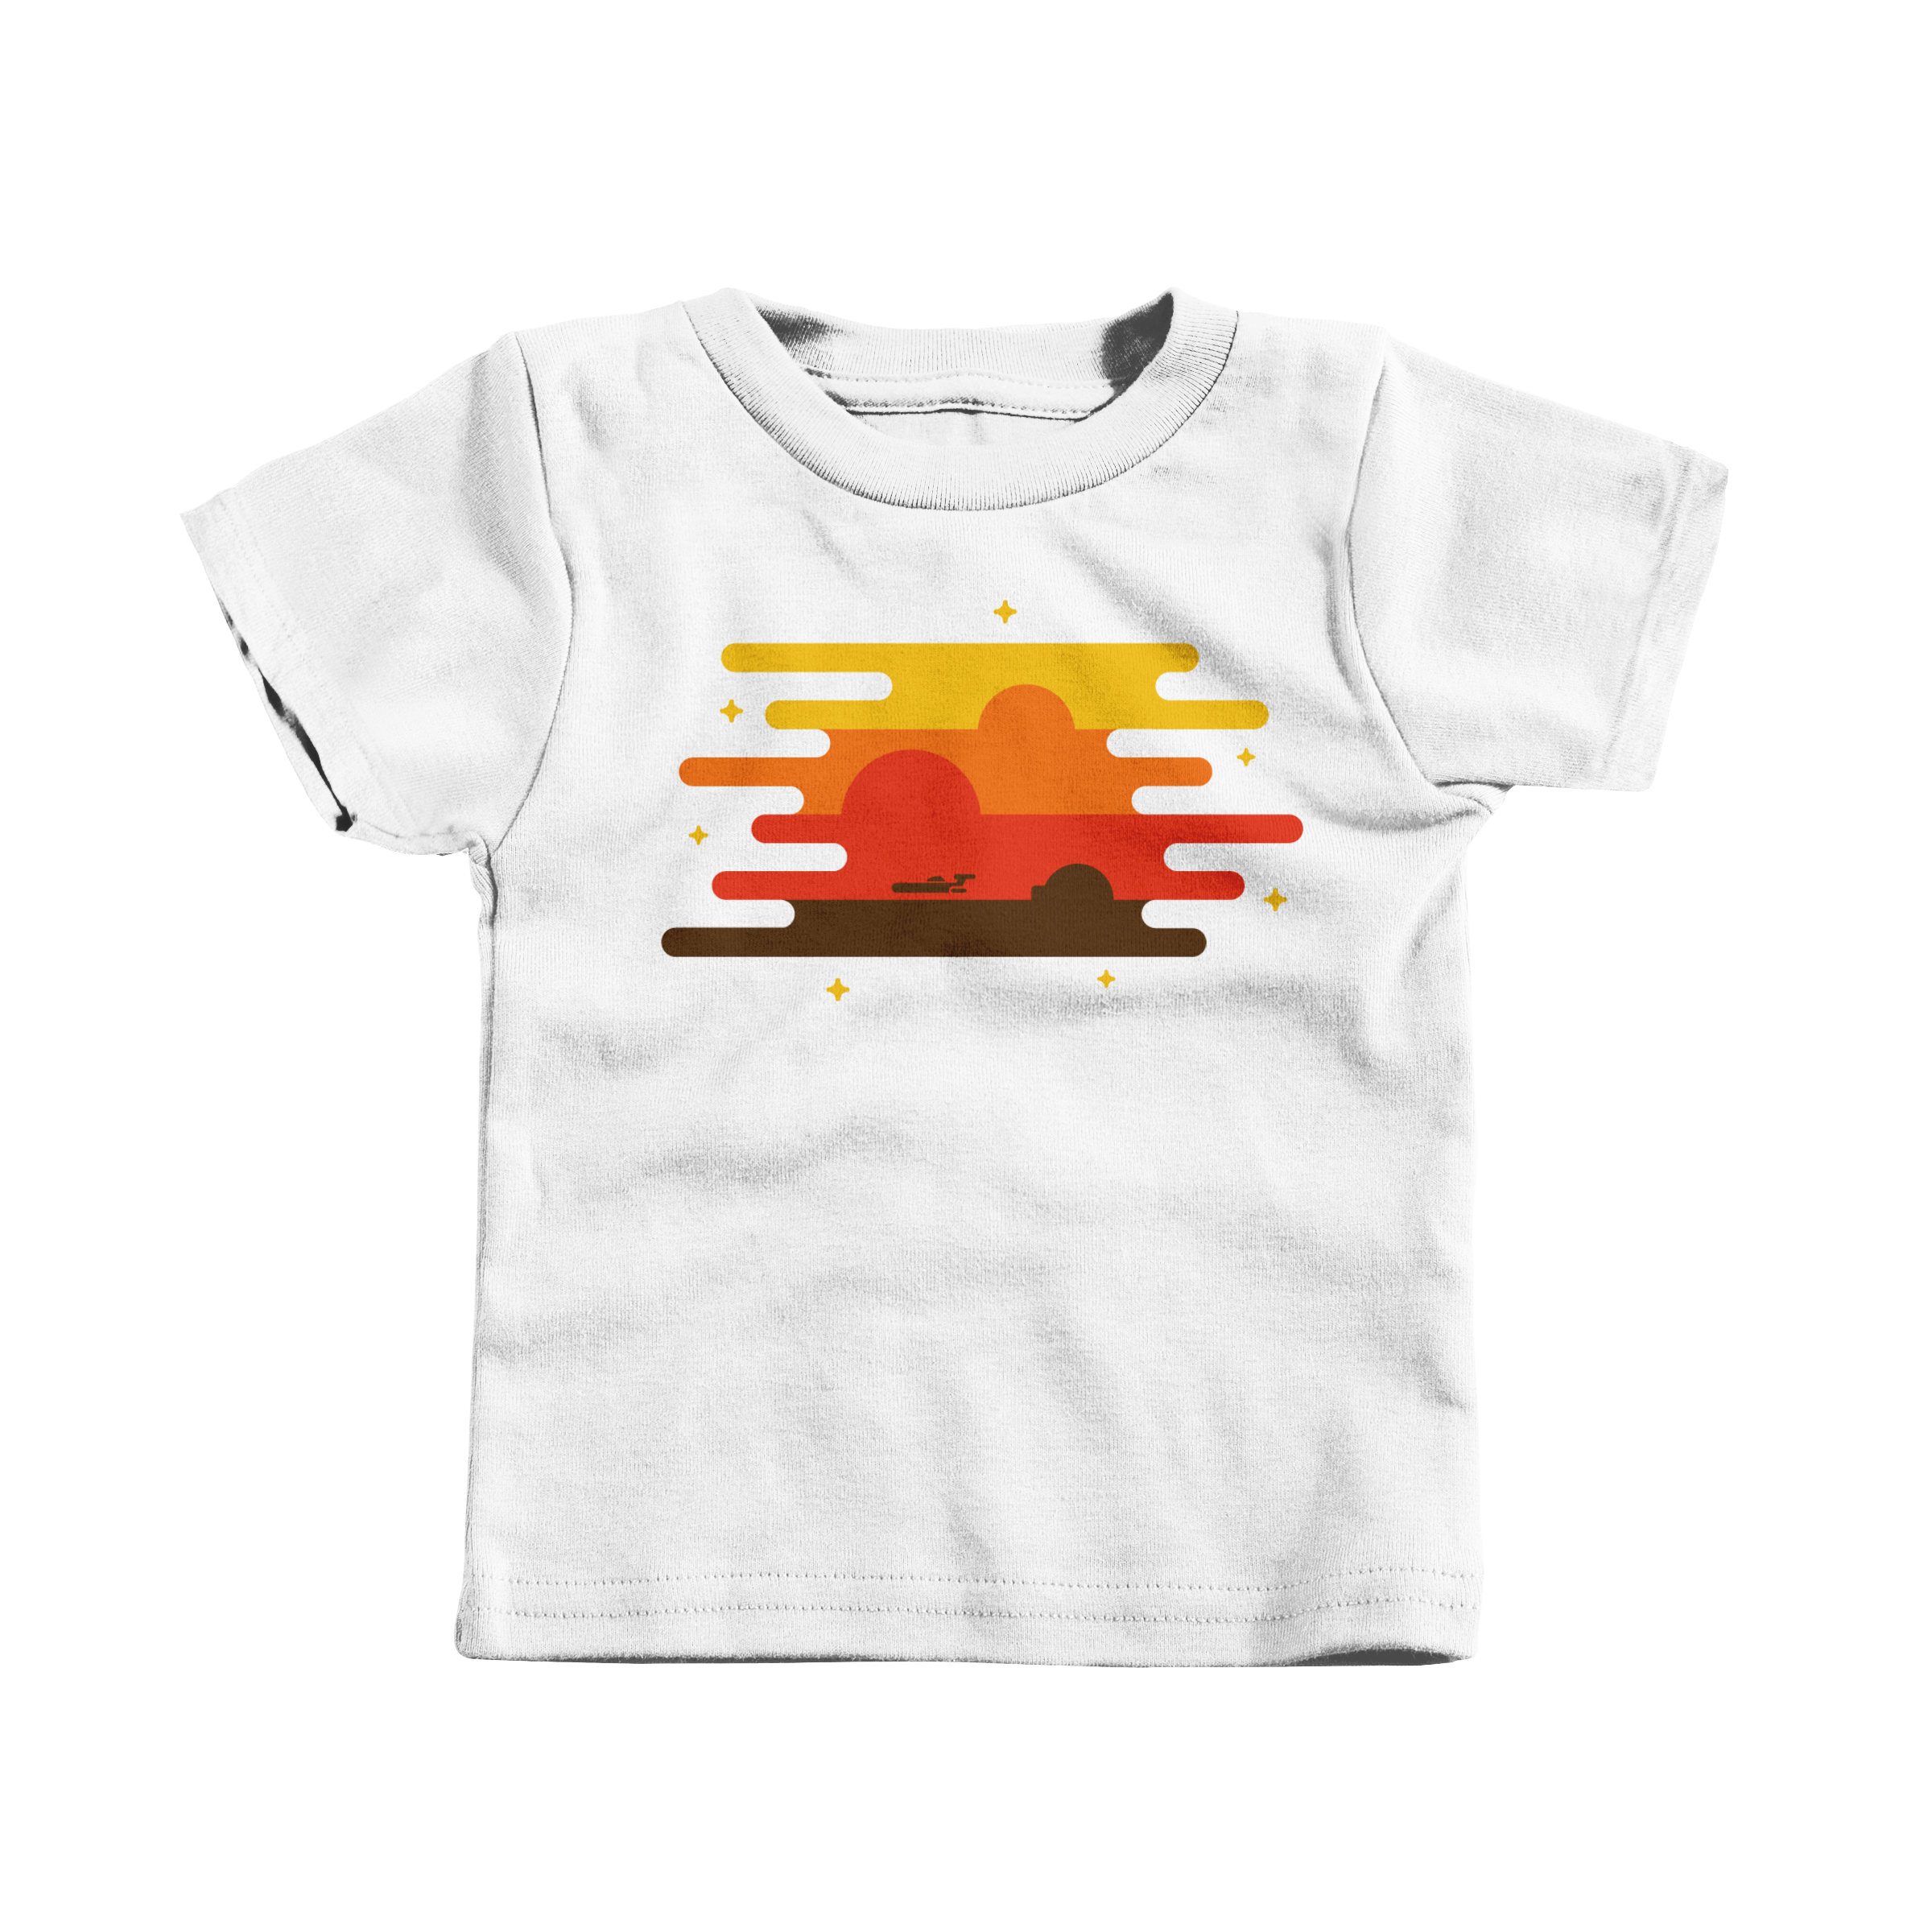 Teetooine White (T-Shirt)